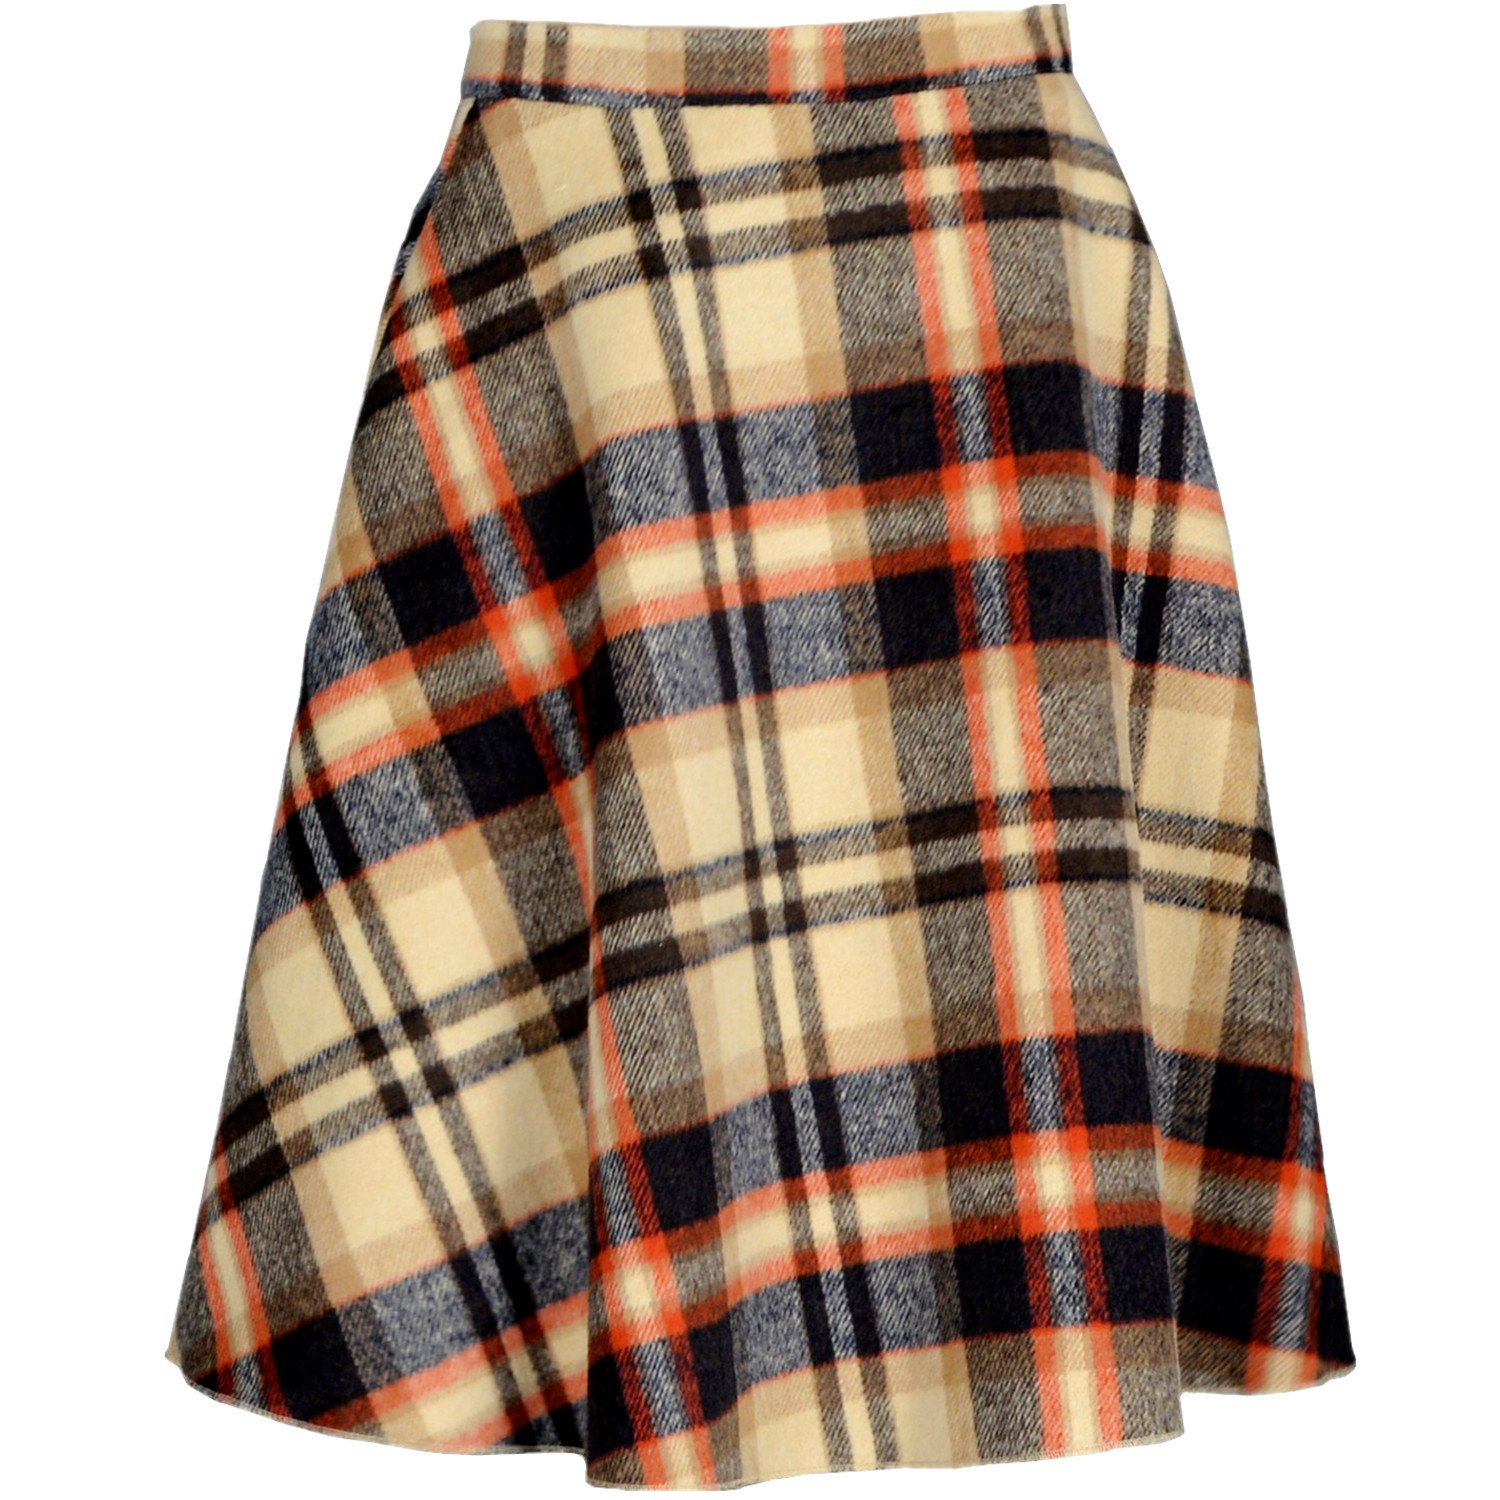 1940s Style Skirts- High Waist Vintage Skirts YSJ Womens Wool Midi Skirt A-Line Pleated Vintage Plaid Winter Swing Skirts  AT vintagedancer.com